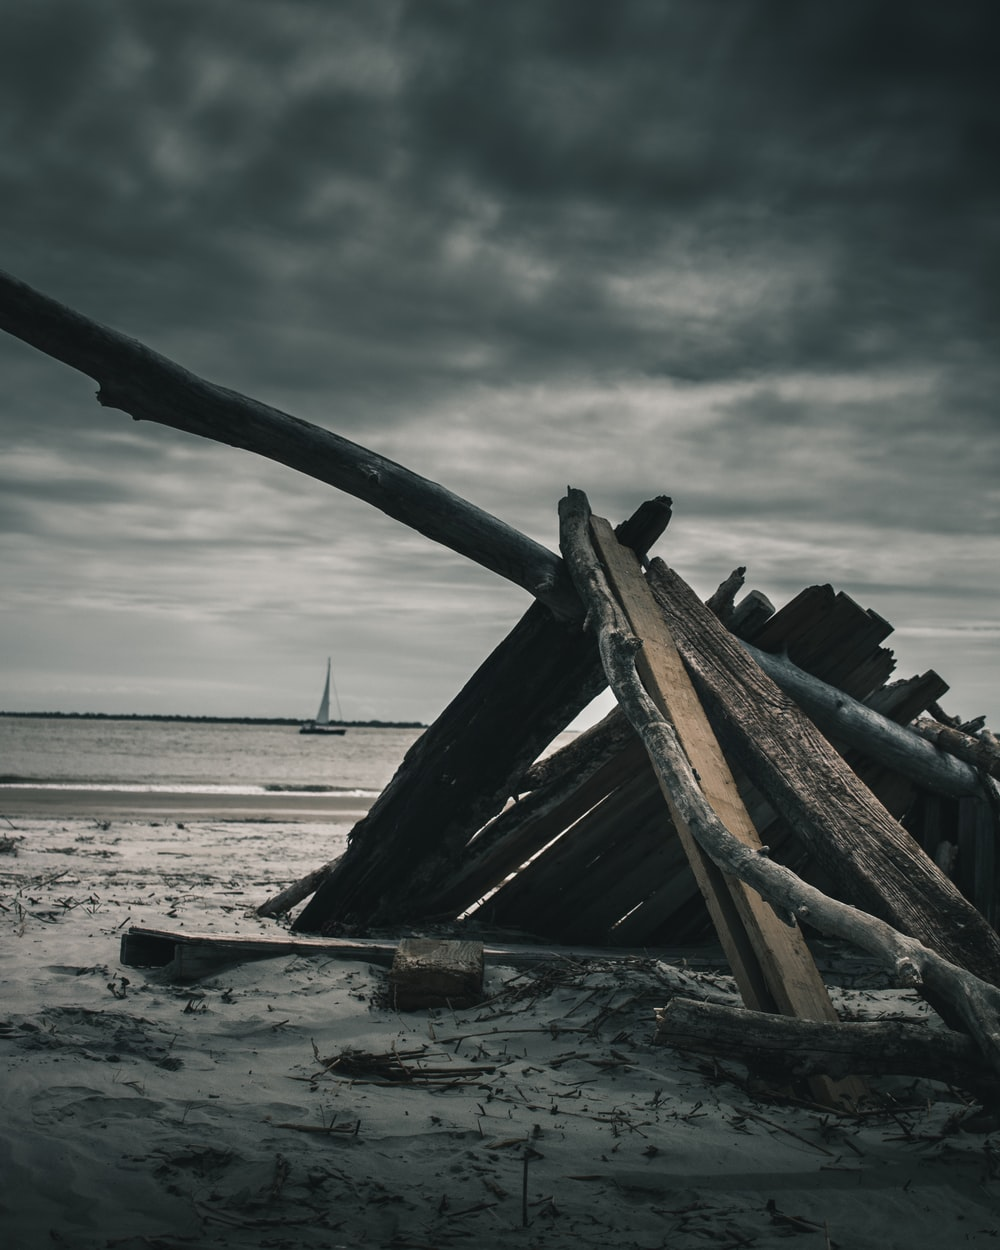 brown wood scraps by the sea during daytime